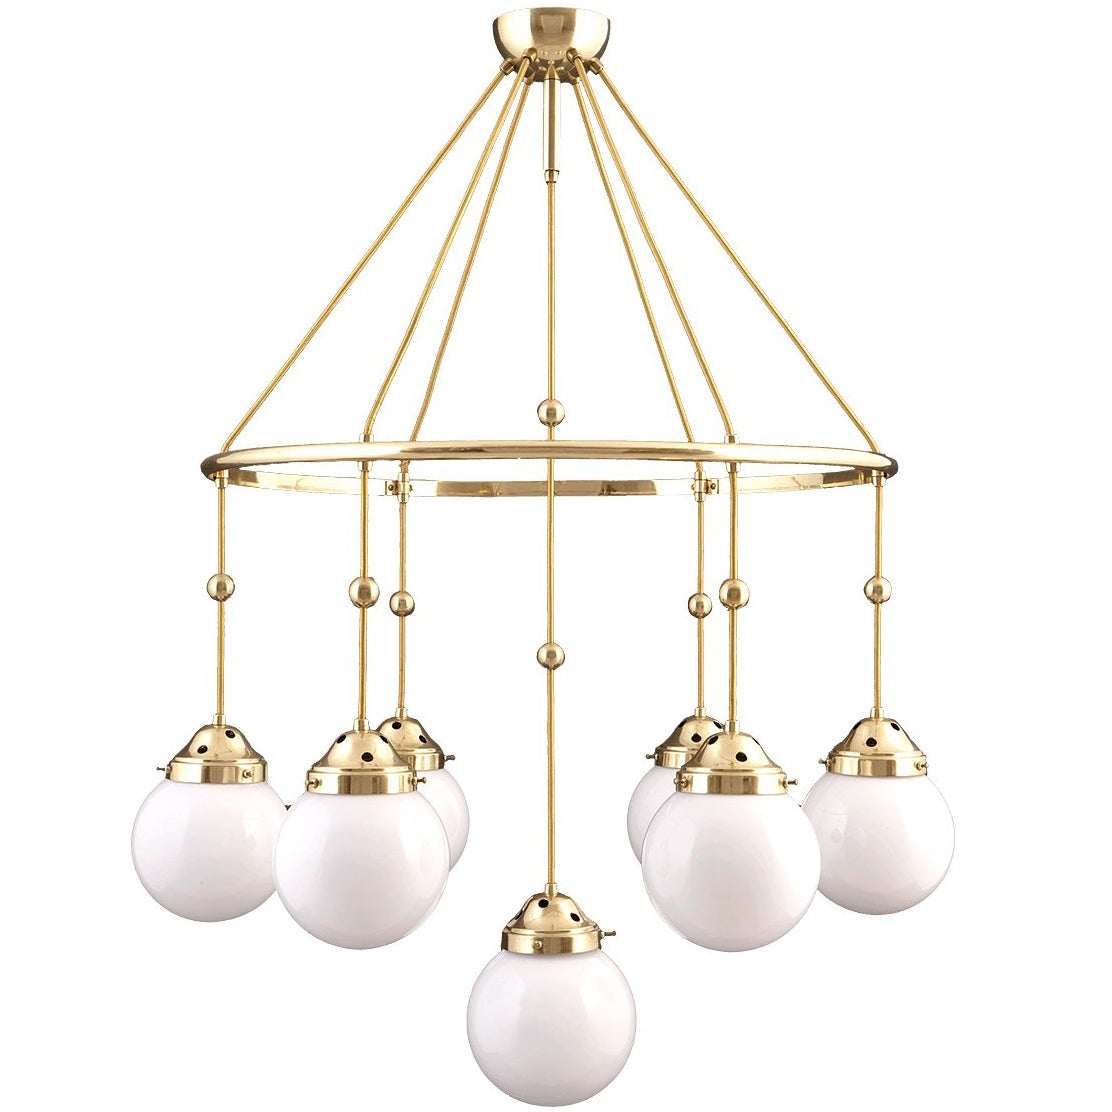 "Adolf Loos - Secessionist - ""Brioni"" Chandelier, Jugendstil, re-edition"